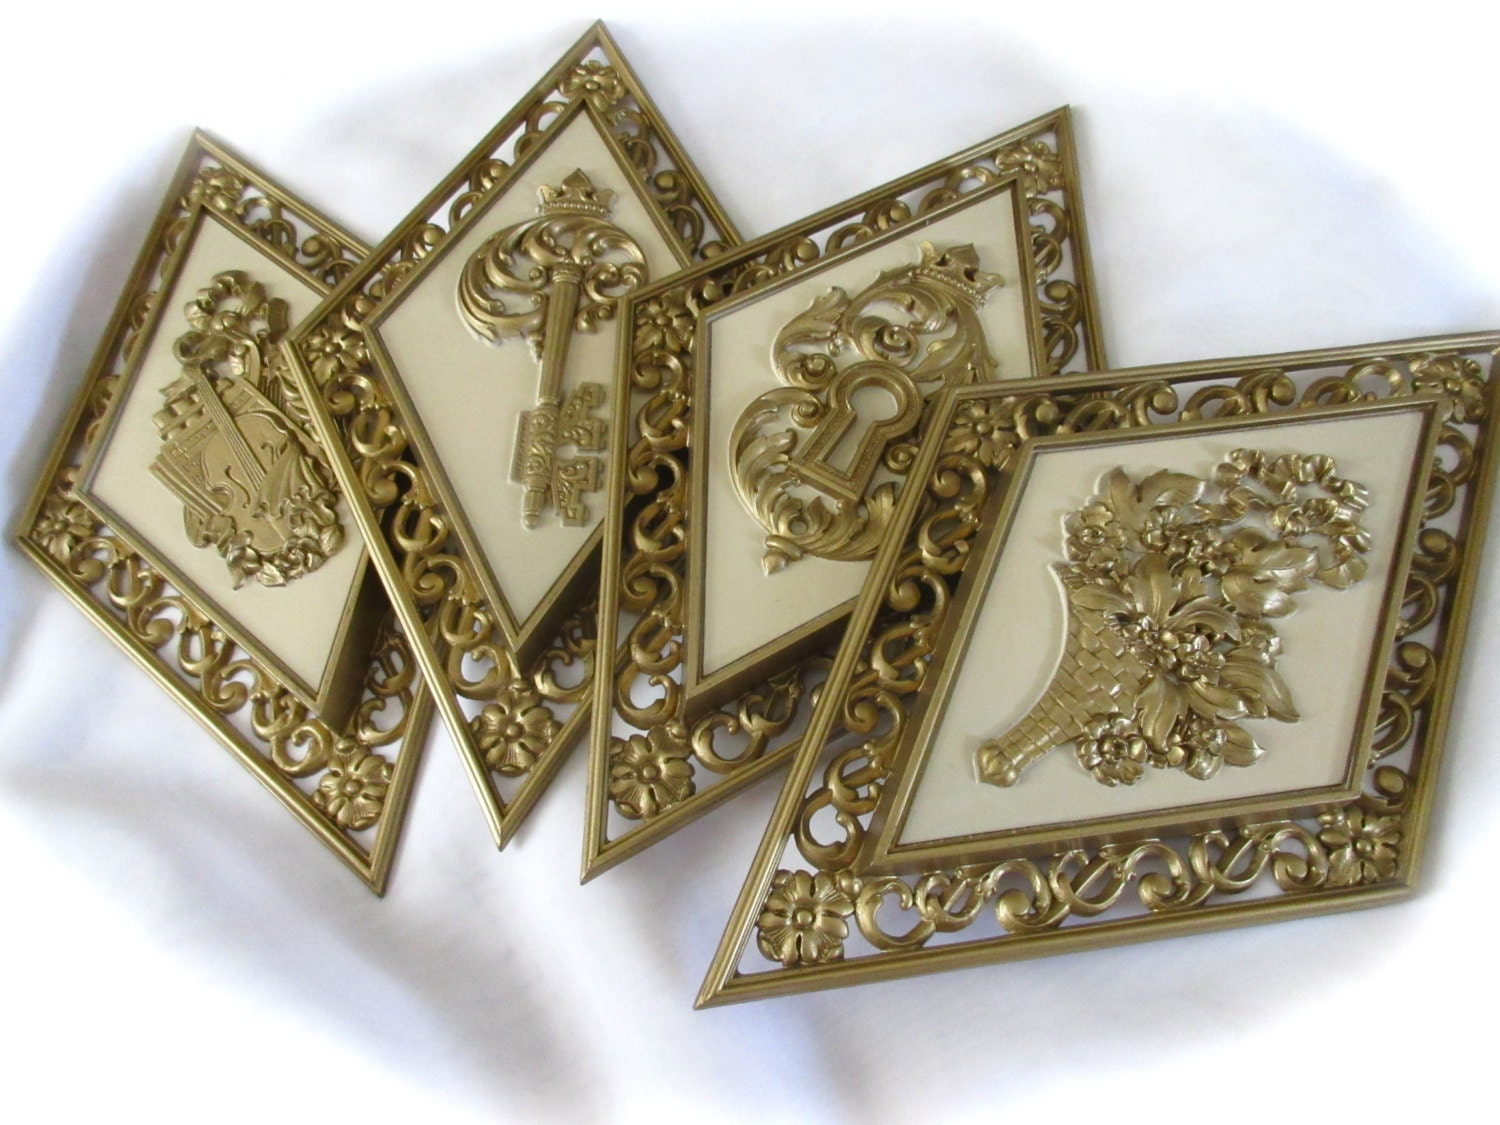 Vintage syroco hollywood regency diamond shape wall plaques for Hollywood regency wall decor